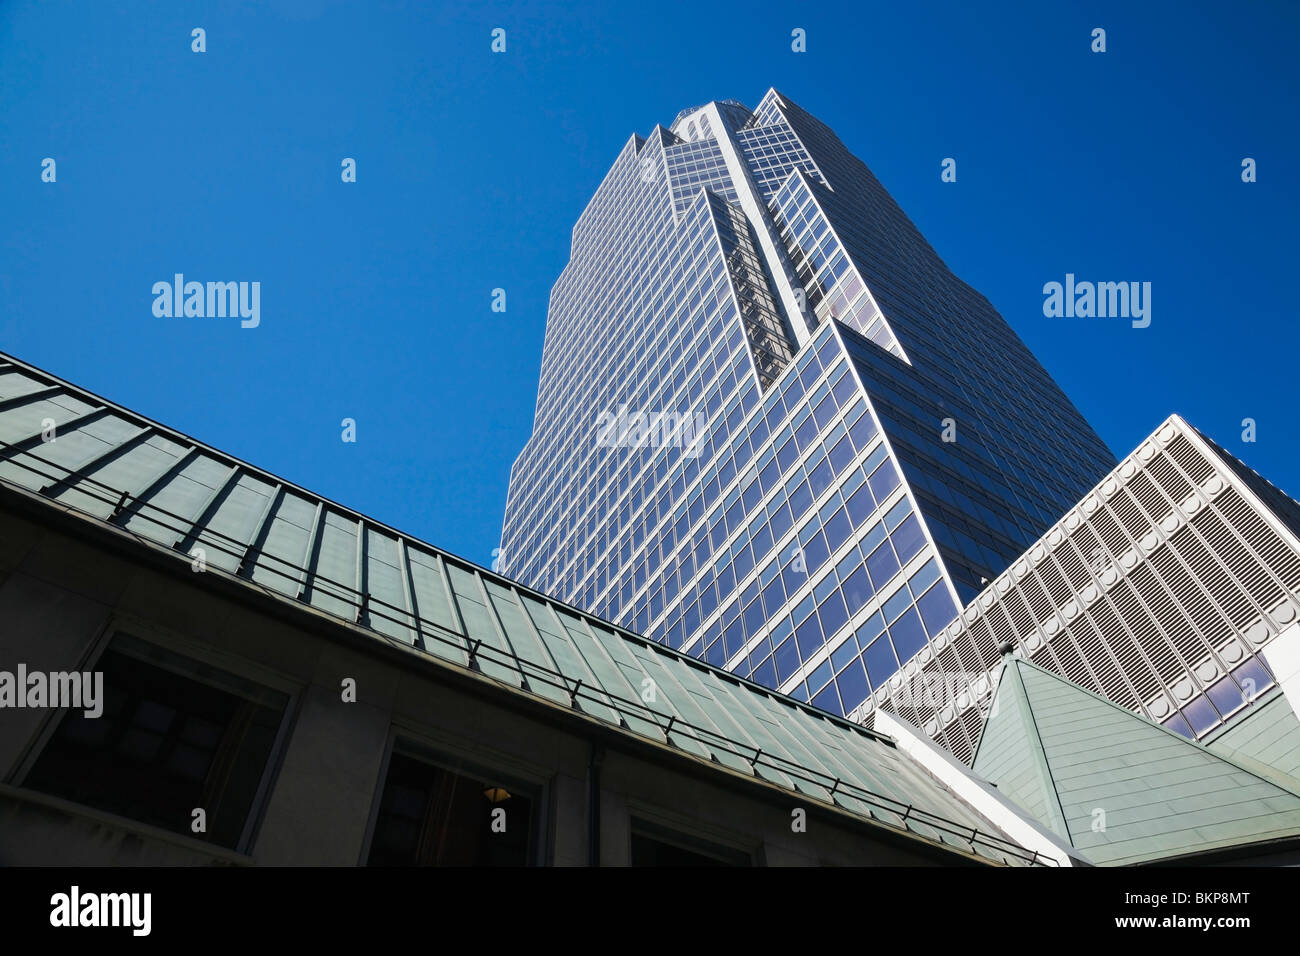 Montreal, Quebec, Canada; Promenades De La Cathedrale Office Tower And Partial View Of Christ Church Cathedral Stock Photo